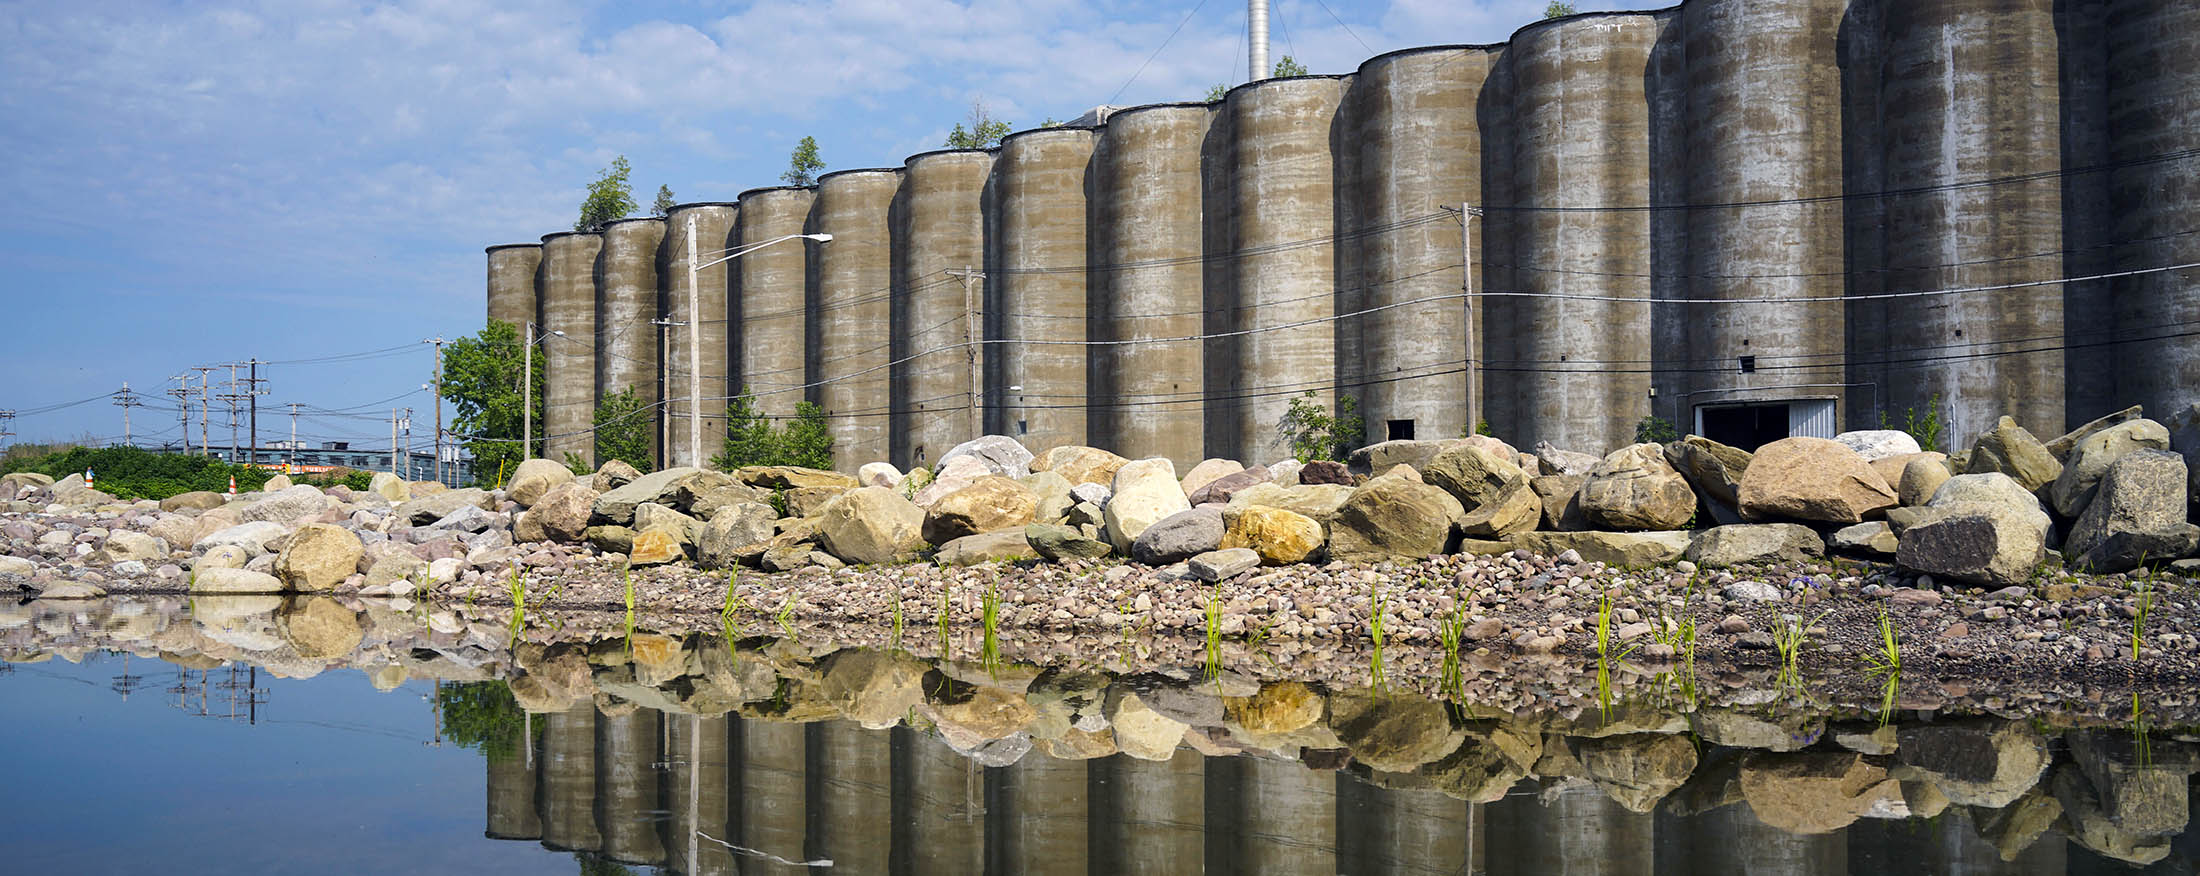 The Gelmac elevator, reflected in a rainwater retention pond at Silo City. (Derek Gee/Buffalo News)